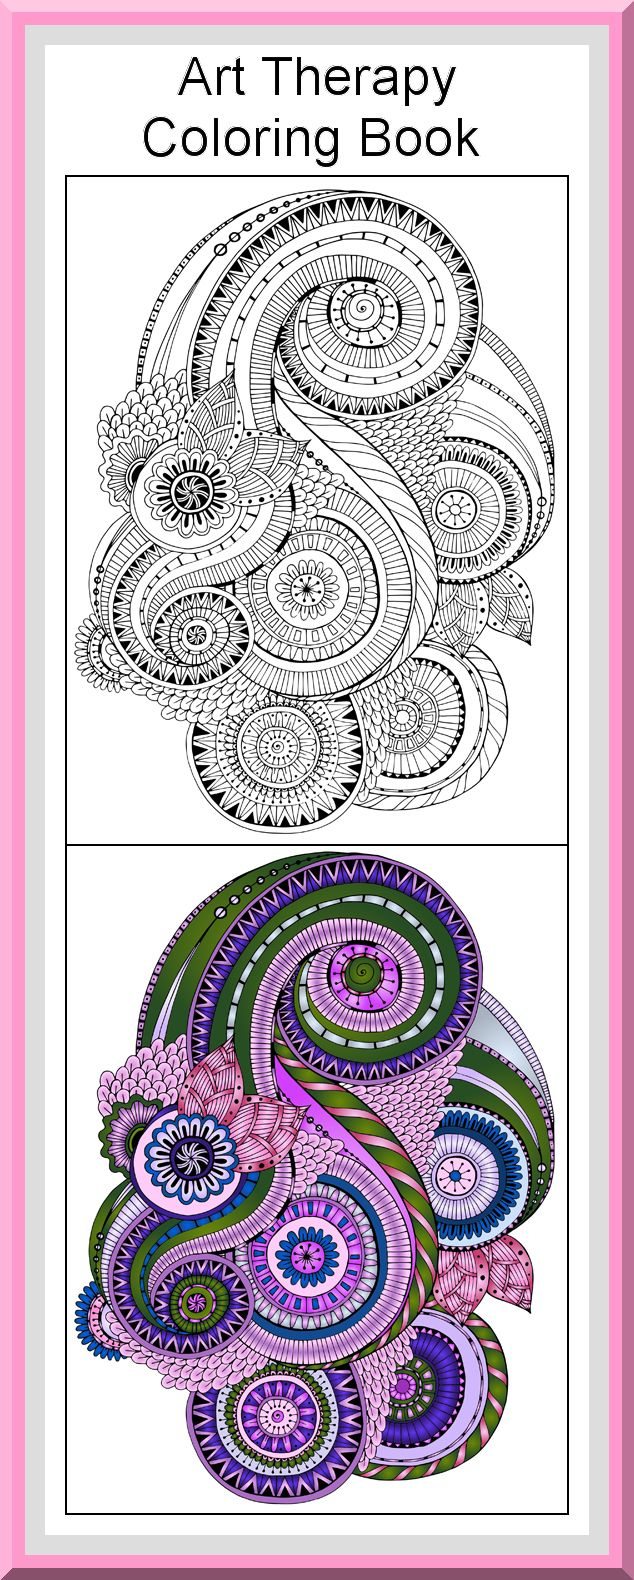 Art color book - Printable Art Therapy Coloring Pages 30 High Definition Coloring Pages Black Outlines With Colored Examples